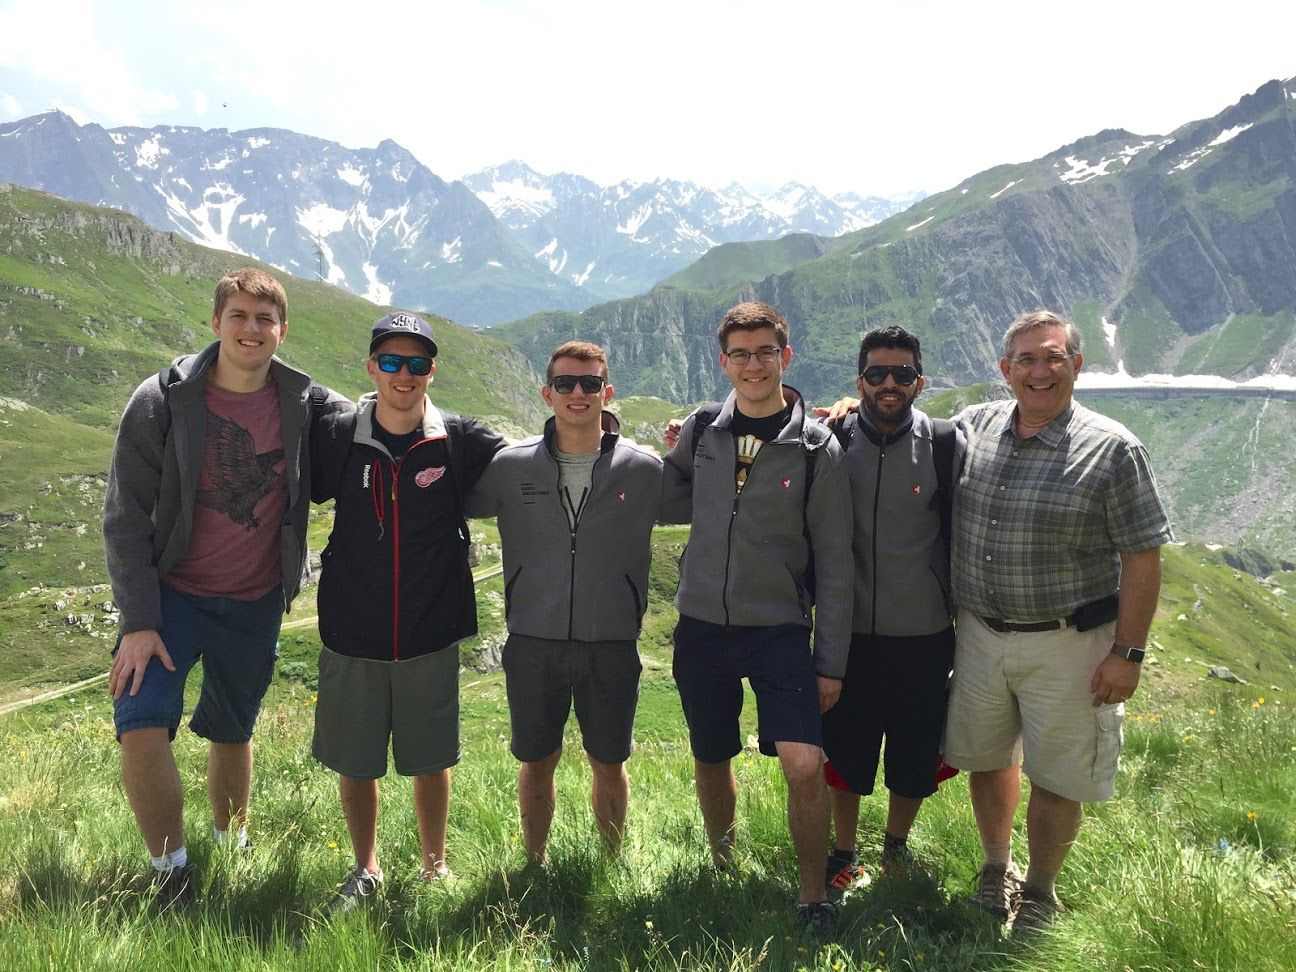 Professor and director of CIS Paul Leidig, with students from GVSU and a university in Switzerland. Swiss summer exchange. Busy studying #CloudComputing @ZHAW and #MobileApplicationDevelopment @GVSU http://gvsu.edu/s/VC  #GVSUCIS